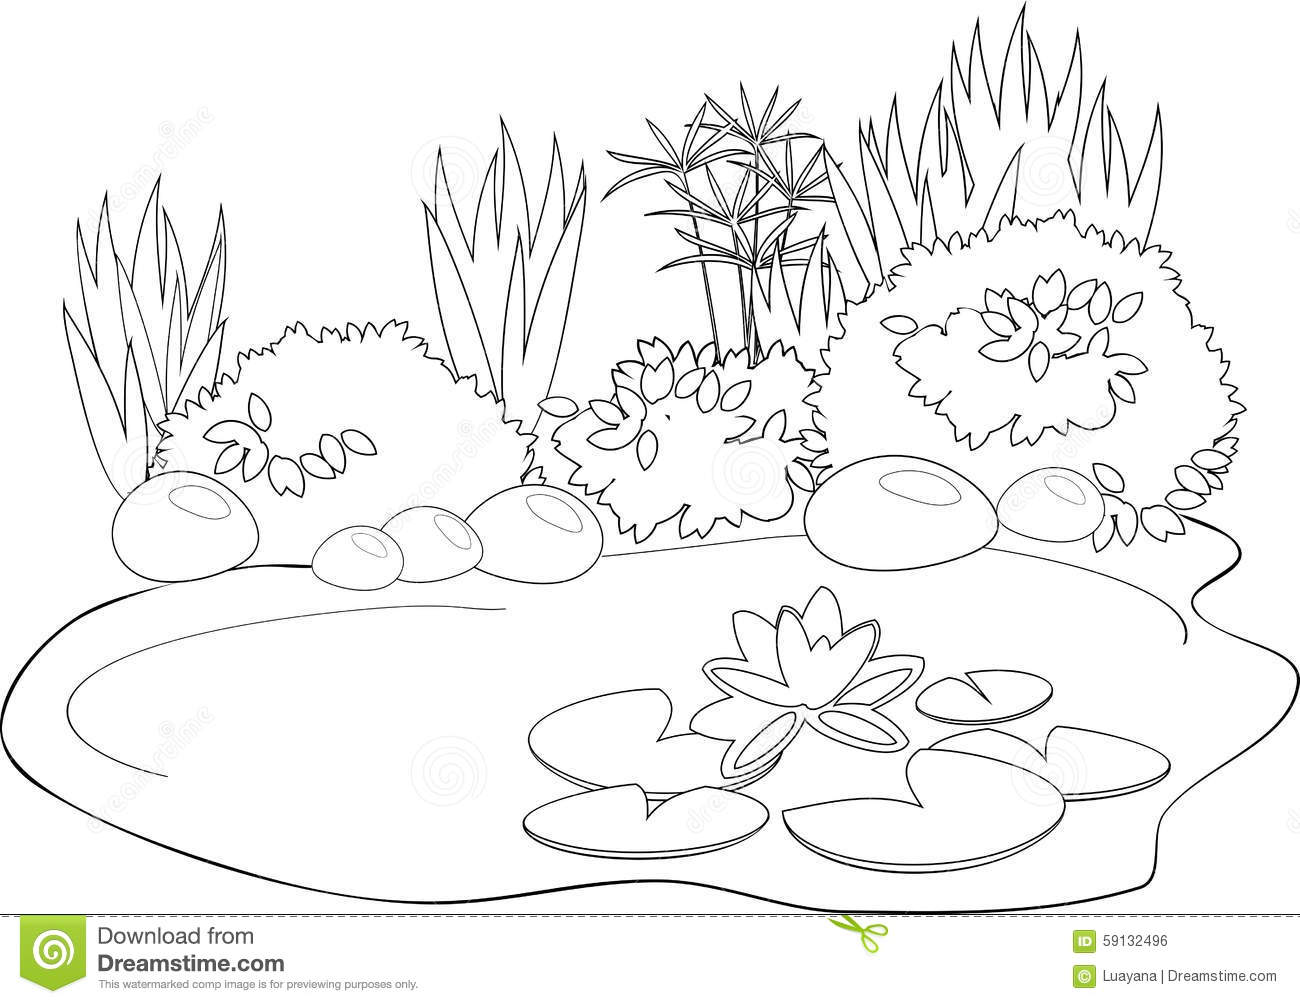 Coloring pond stock vector. Illustration of book, cute